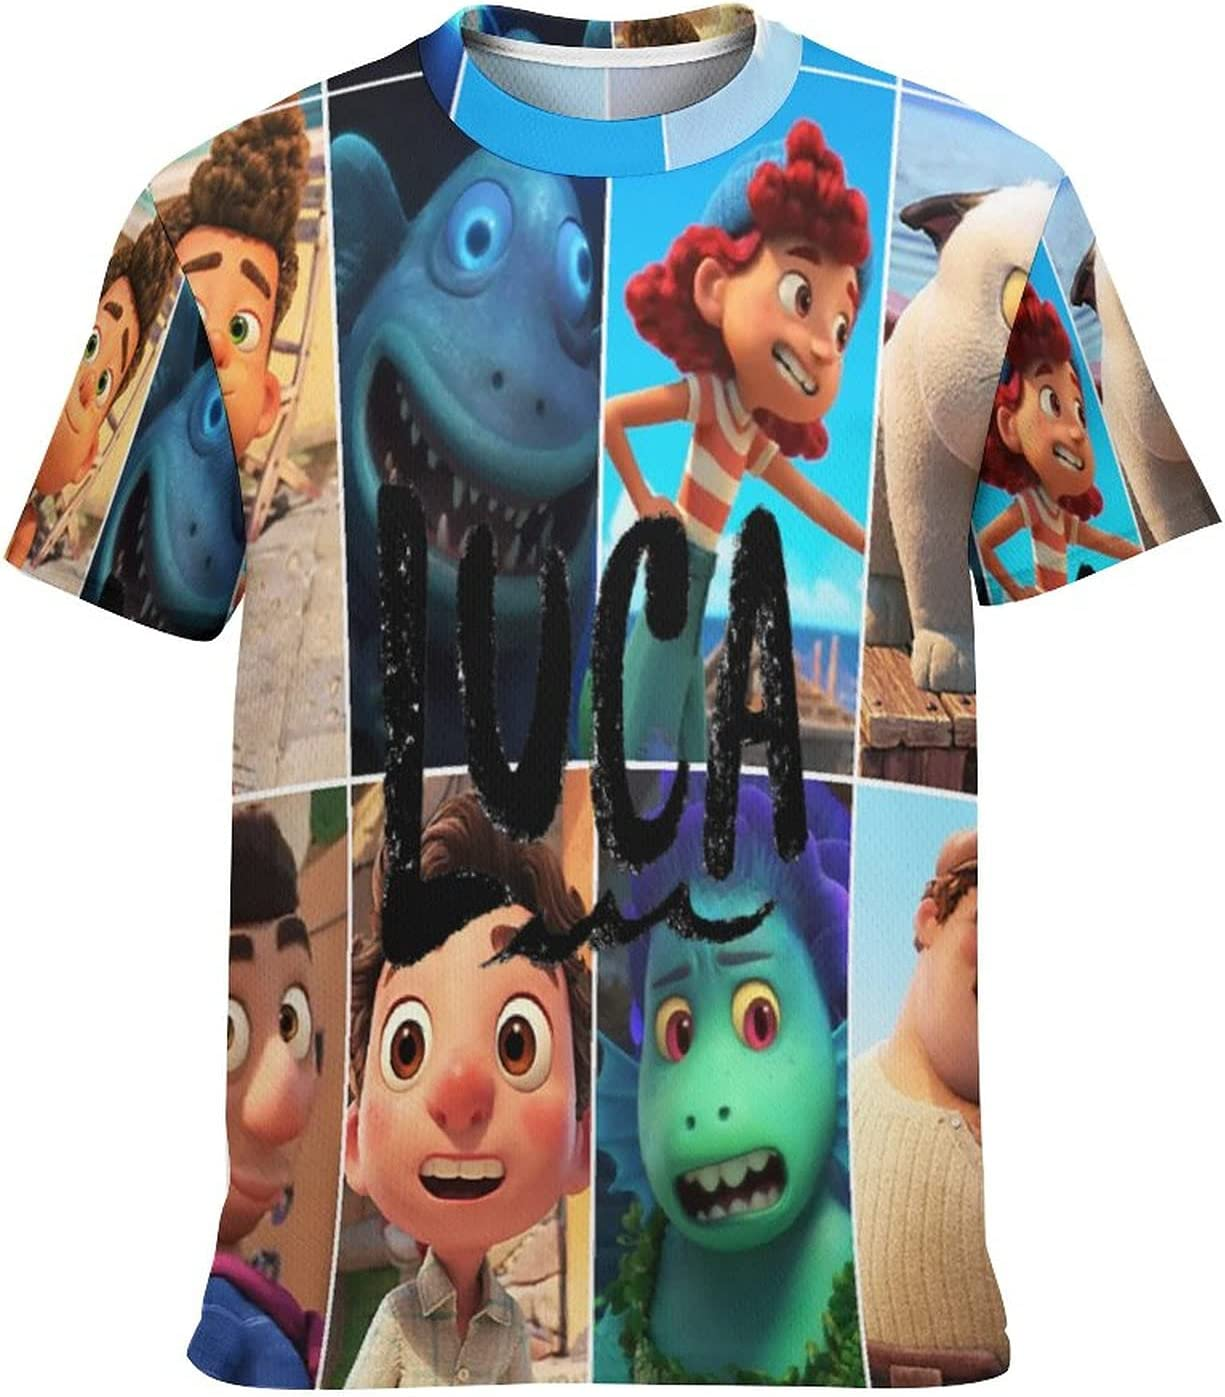 Kid's Casual Graphic Round Neck Short Sleeve T-Shirt Cozy Trendy Tee Shirts Tops for Boys M